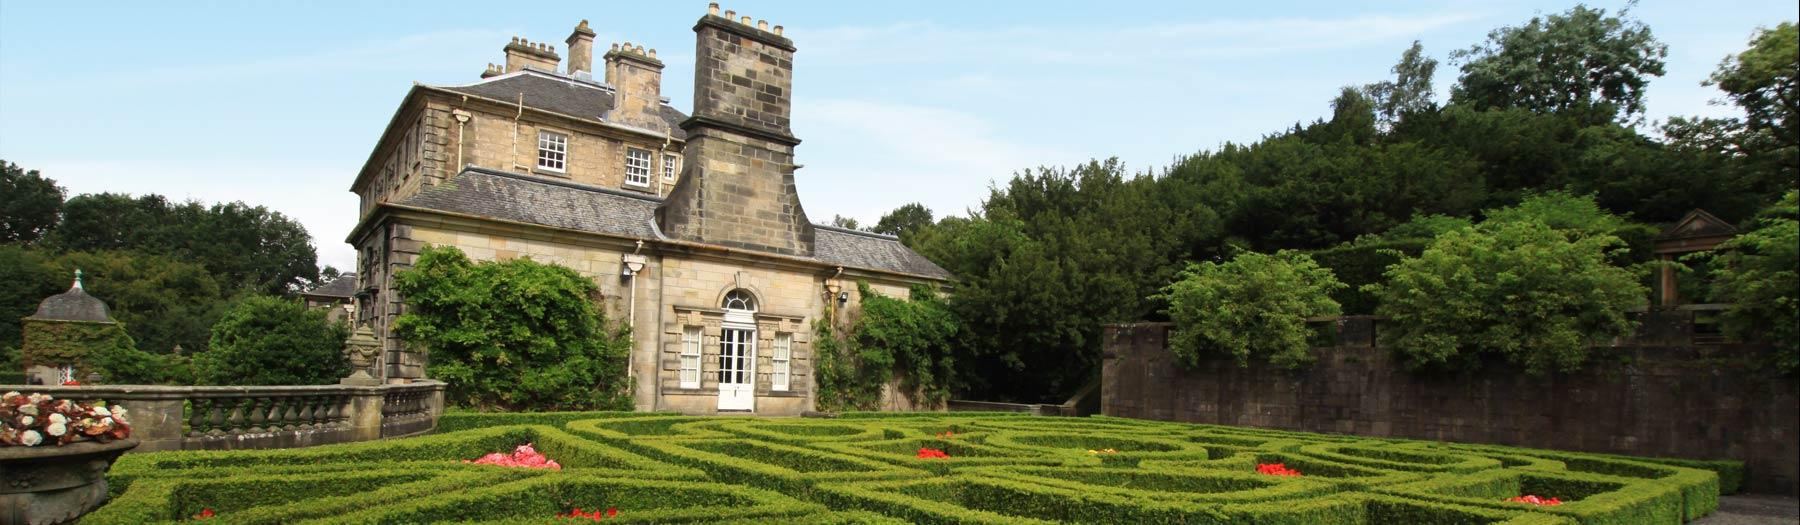 Country house and garden